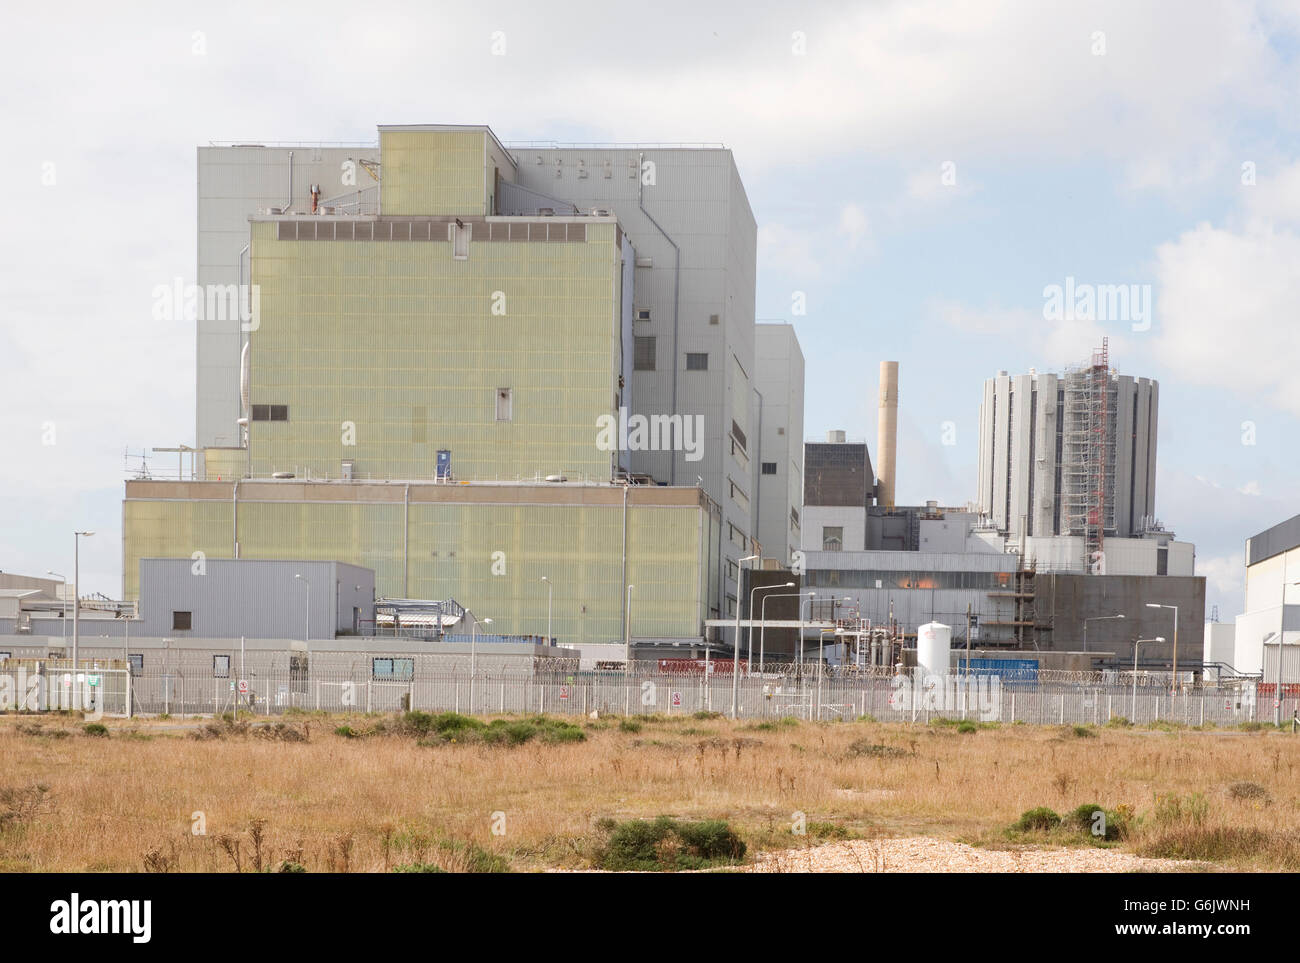 Dungeness nuclear power station in Dungeness, Romney Marsh, Kent, England. - Stock Image